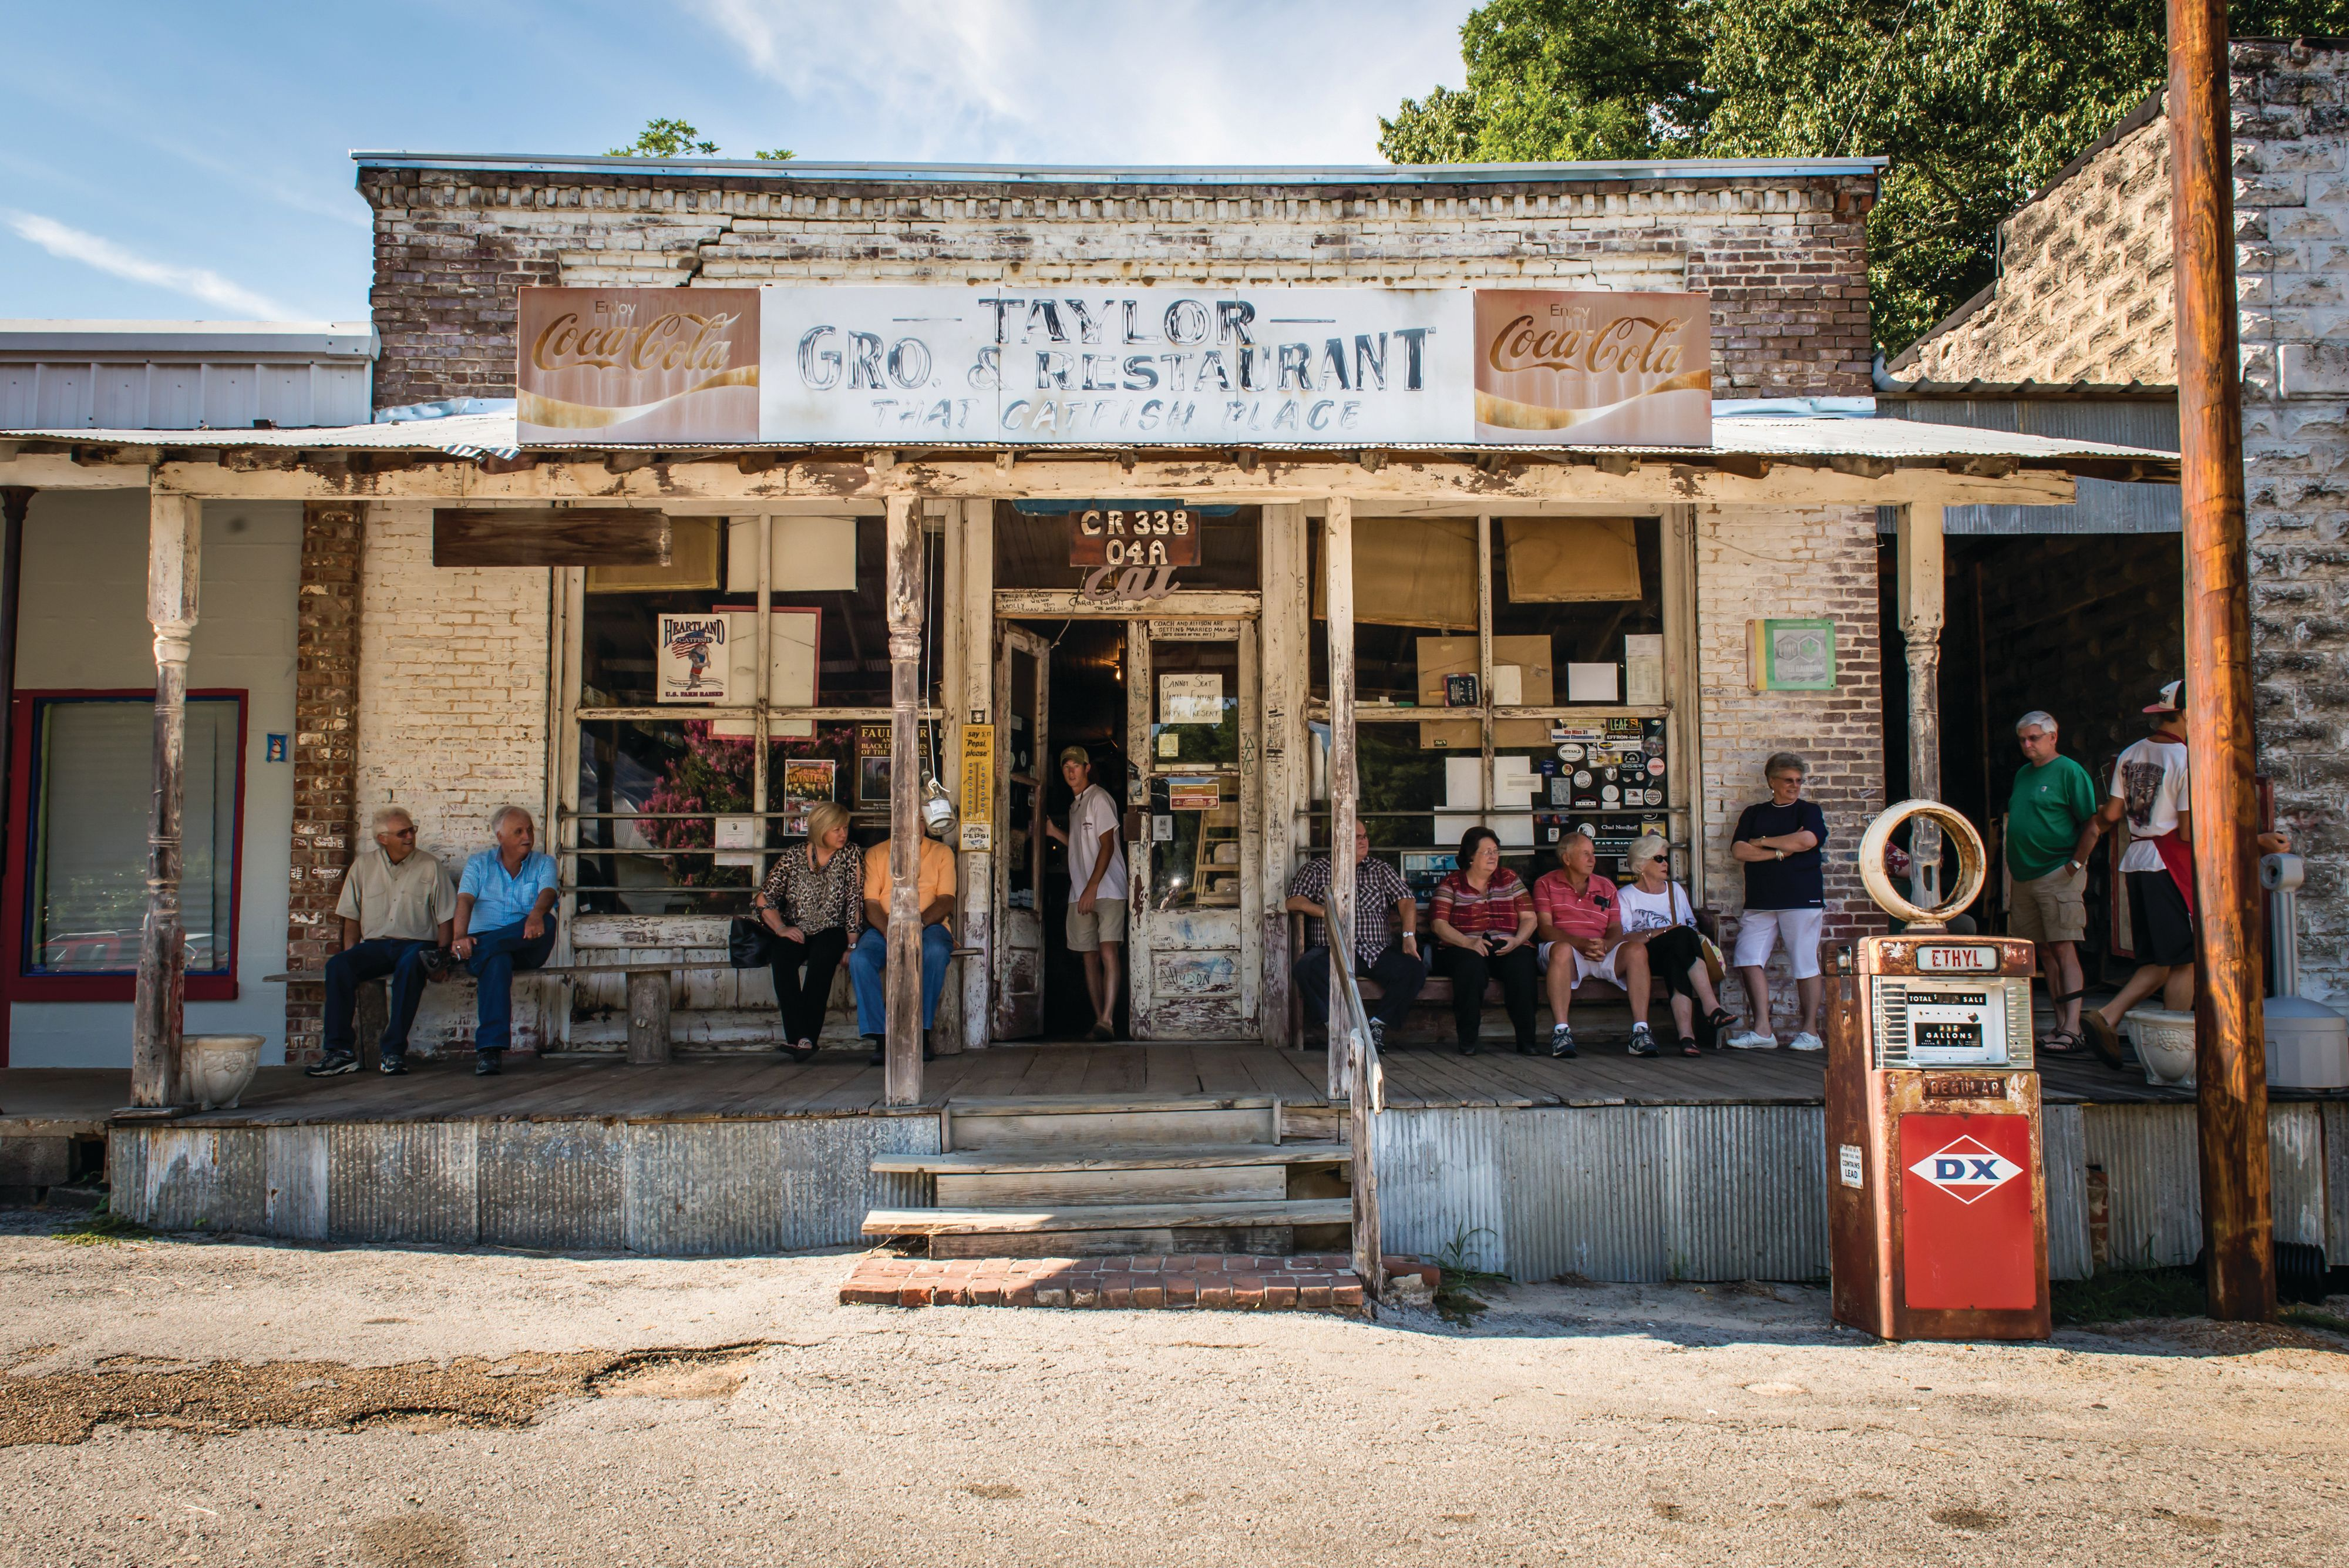 From Oxford to Clarksdale: The Distance between Home and Hope 4